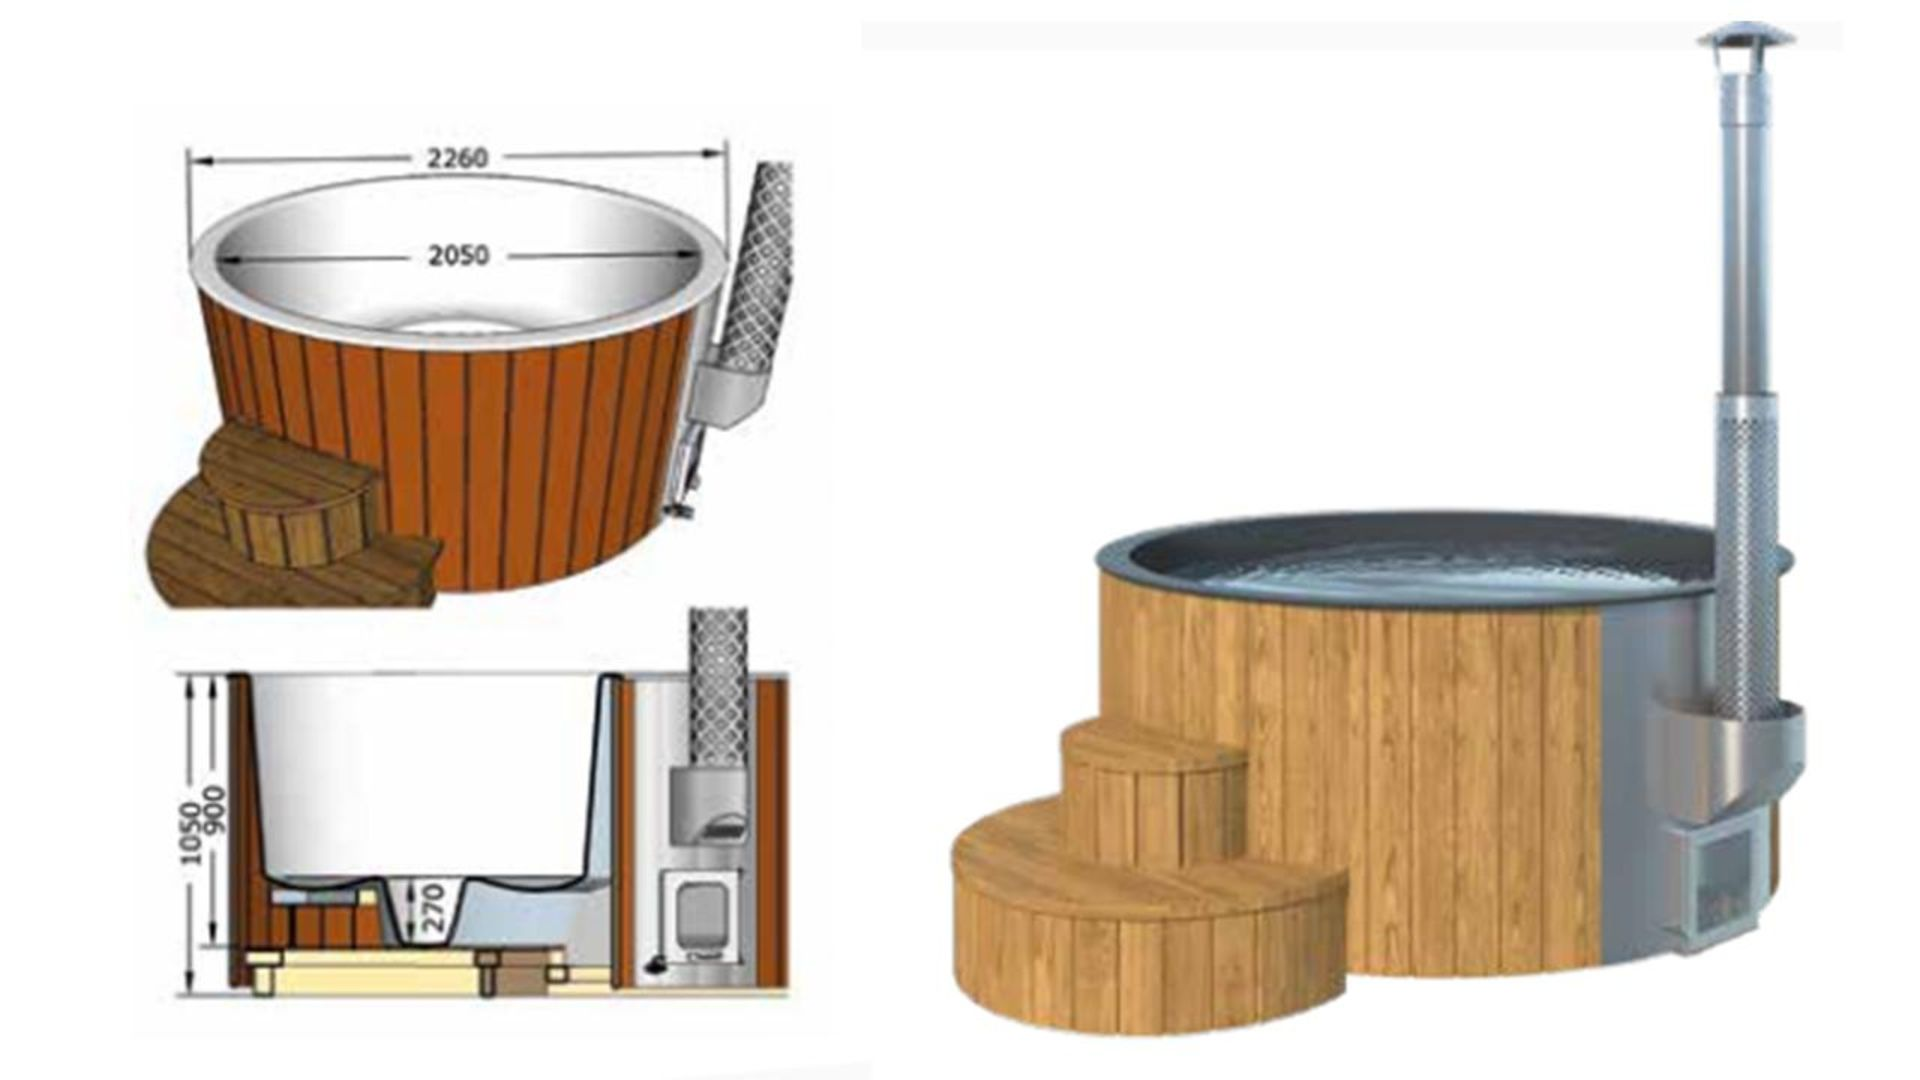 + VAT Brand New Deluxe 220 Hot Tub - 5/6 Person - 105cm Tall - 226cm Diamter - 19mm Thickness - - Image 2 of 2